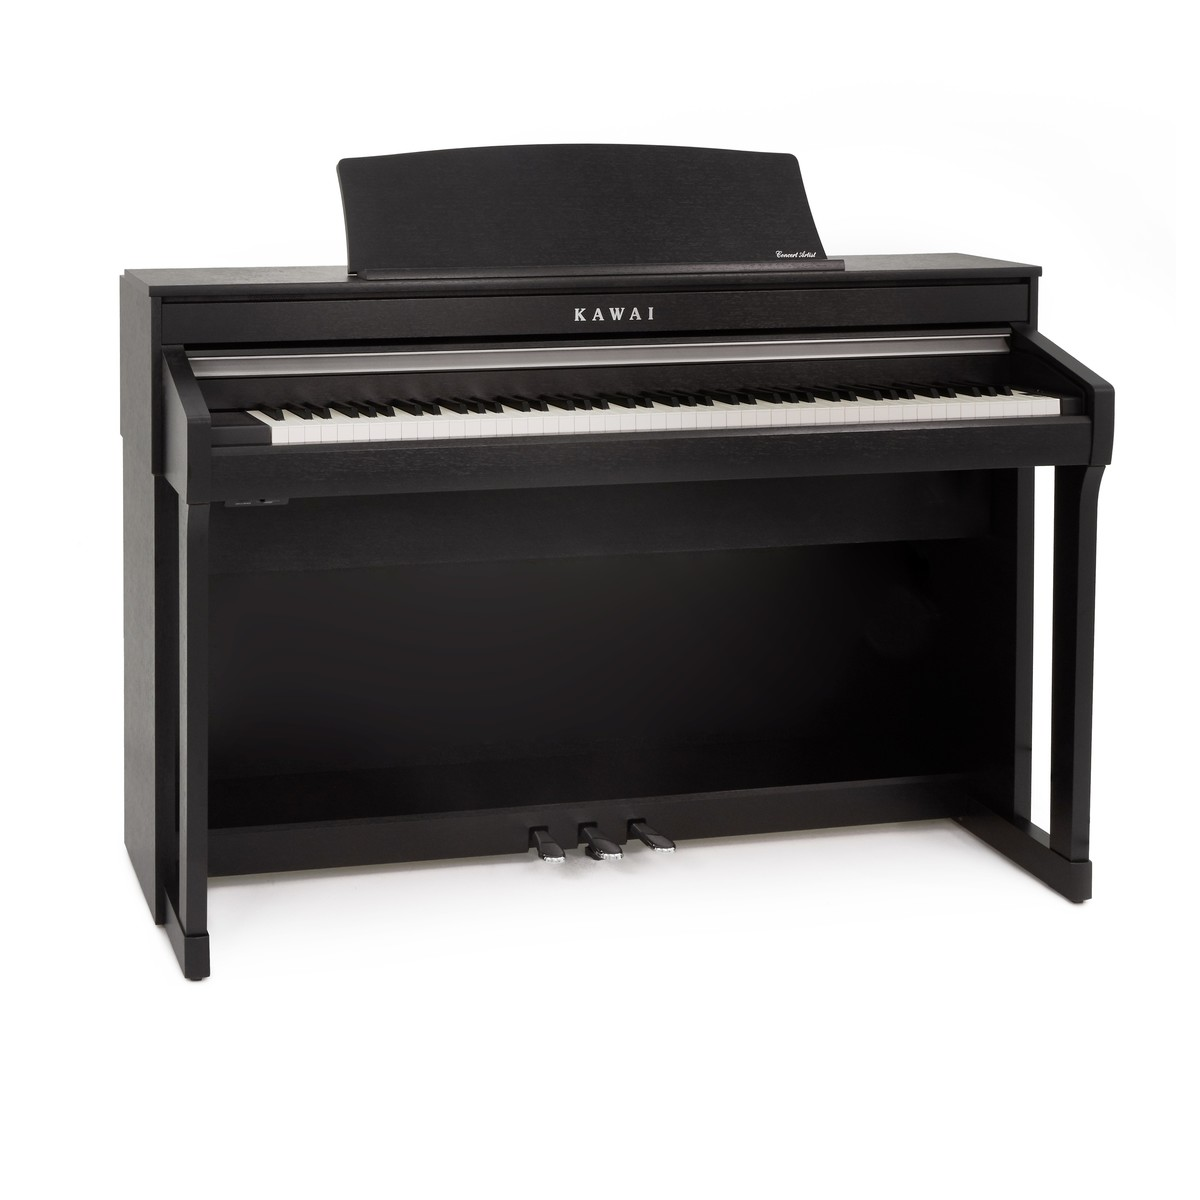 kawai ca78 digital piano satin black at gear4music. Black Bedroom Furniture Sets. Home Design Ideas